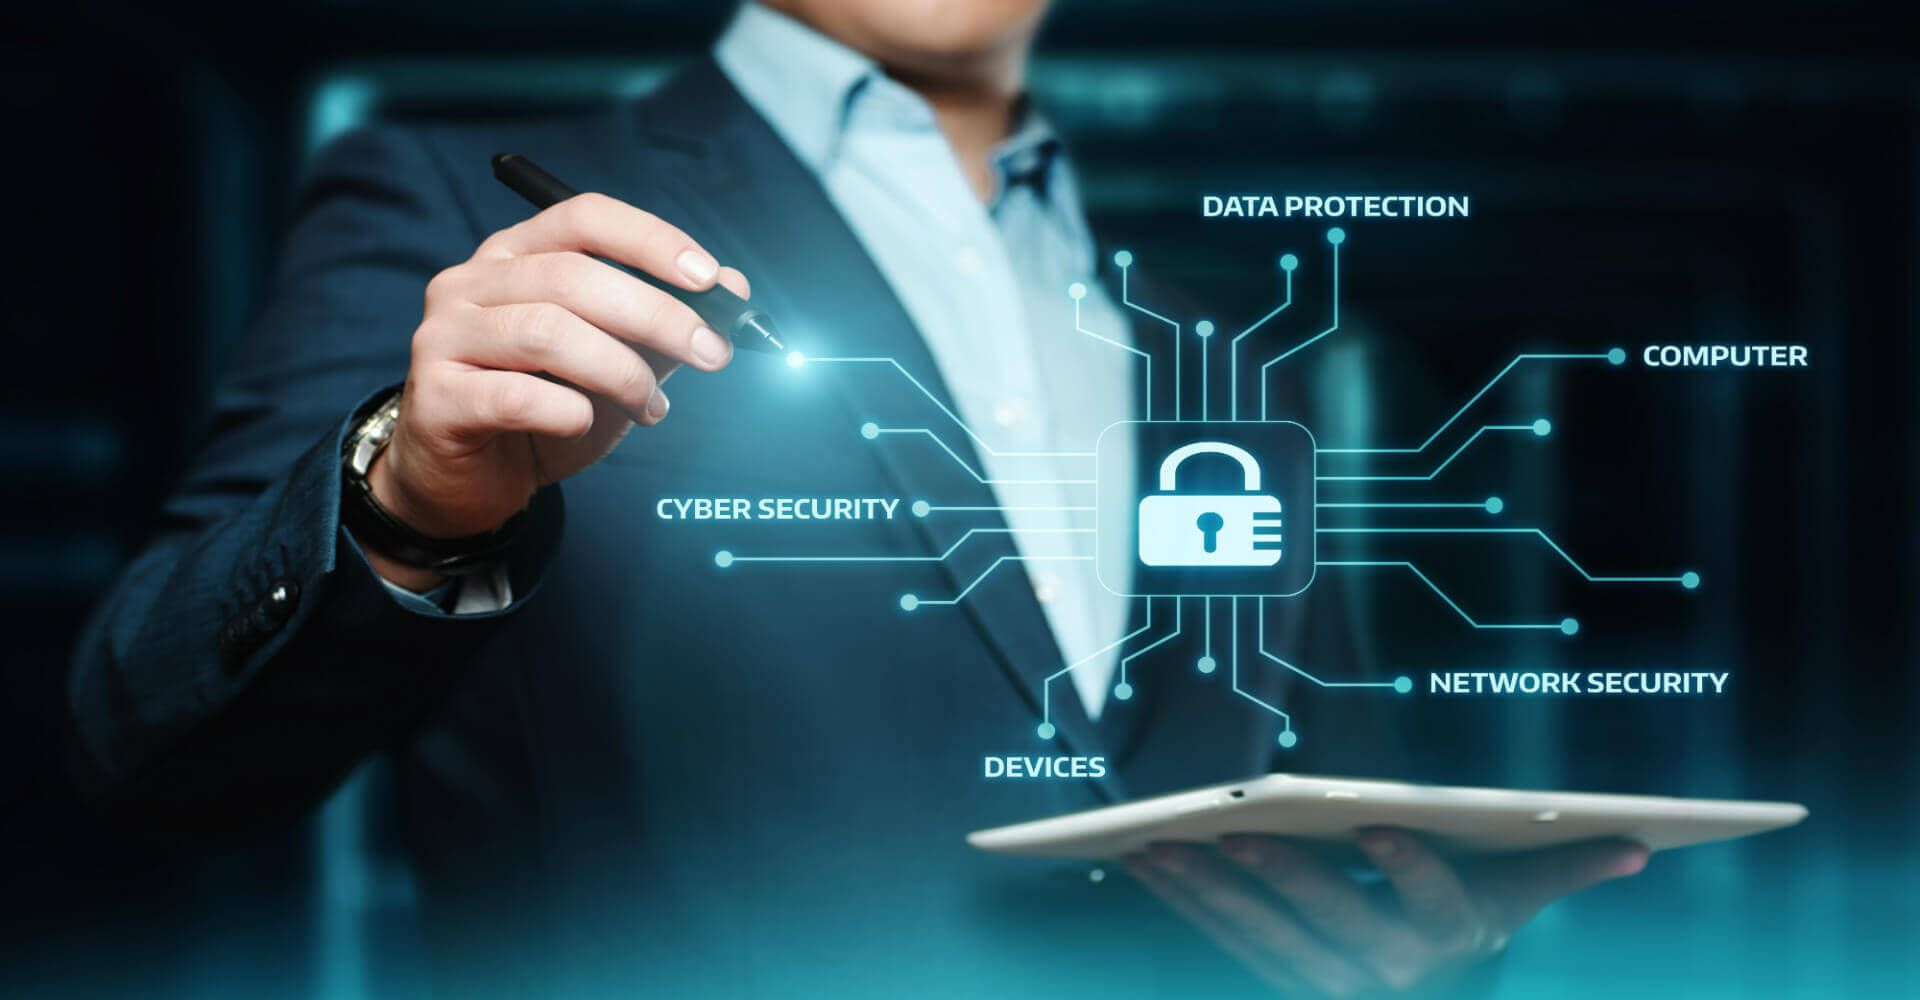 WHY CYBER SECURITY IS IMPORTANT FOR BUSINESS